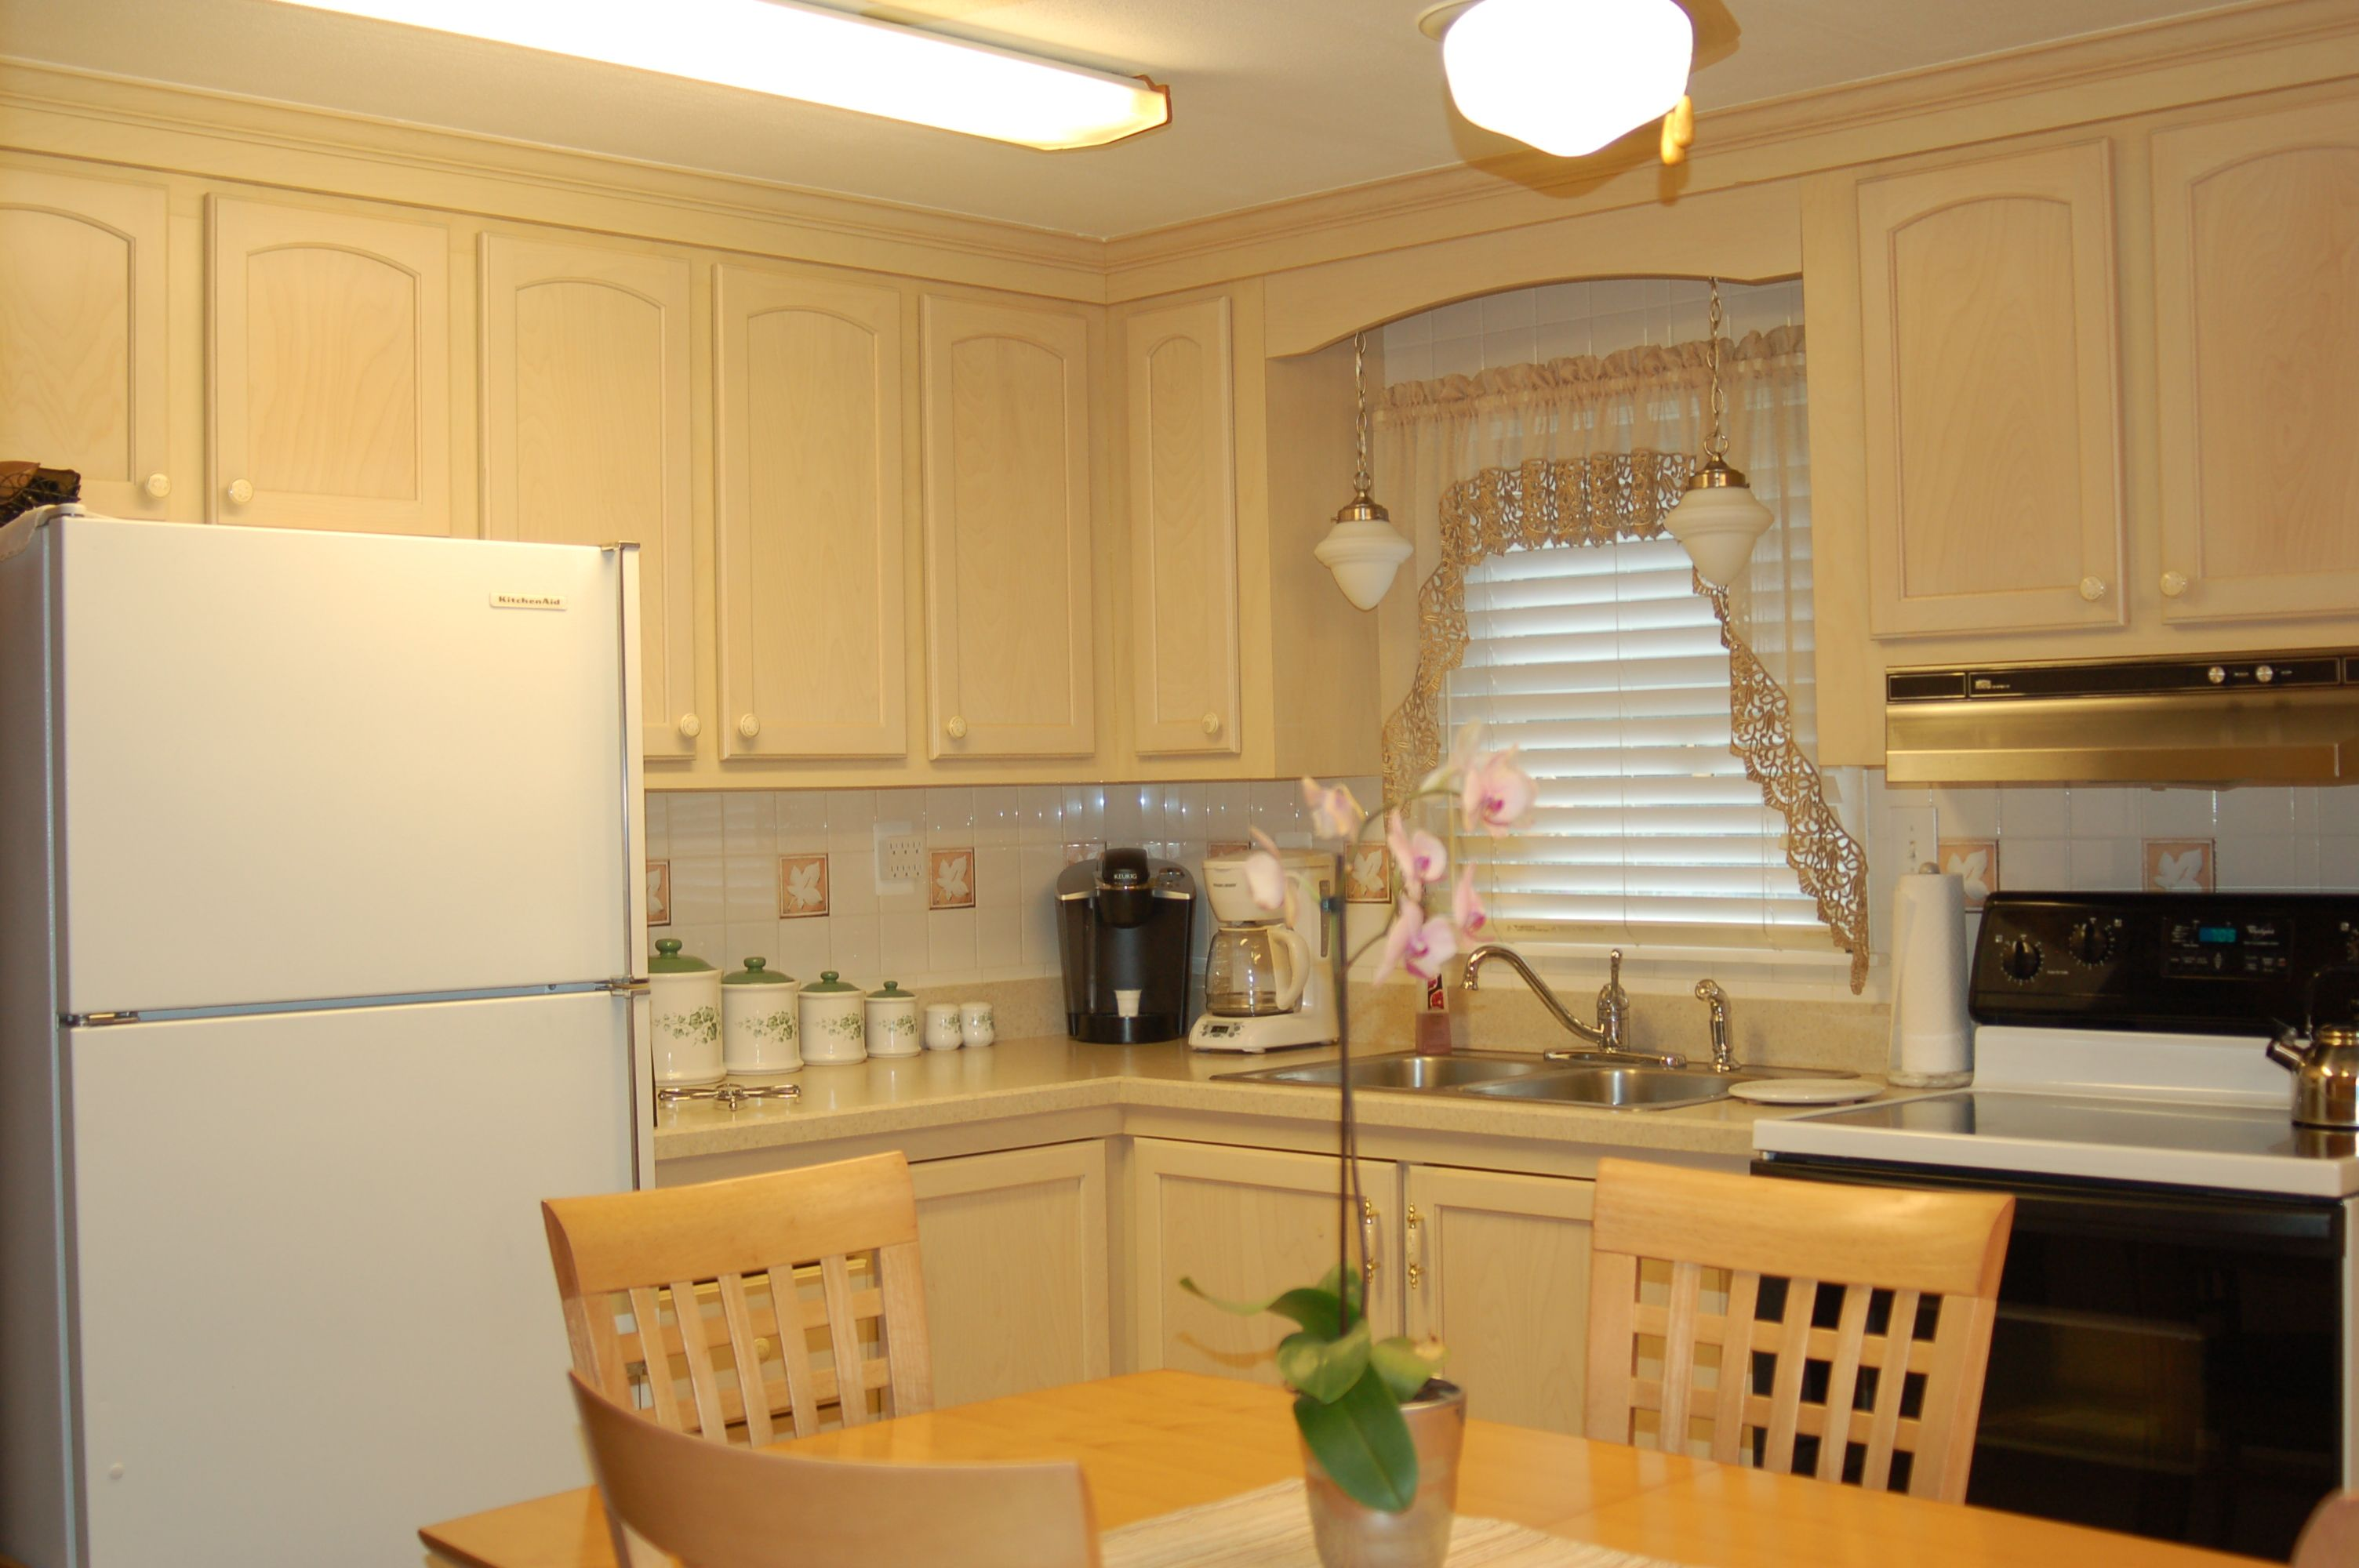 Traditional Looking Kitchen Remodeled With New Kitchen Cabinetry Kitchen Magic Refacers Kitchen Kitchen Remodel Kitchen Bathroom Remodel